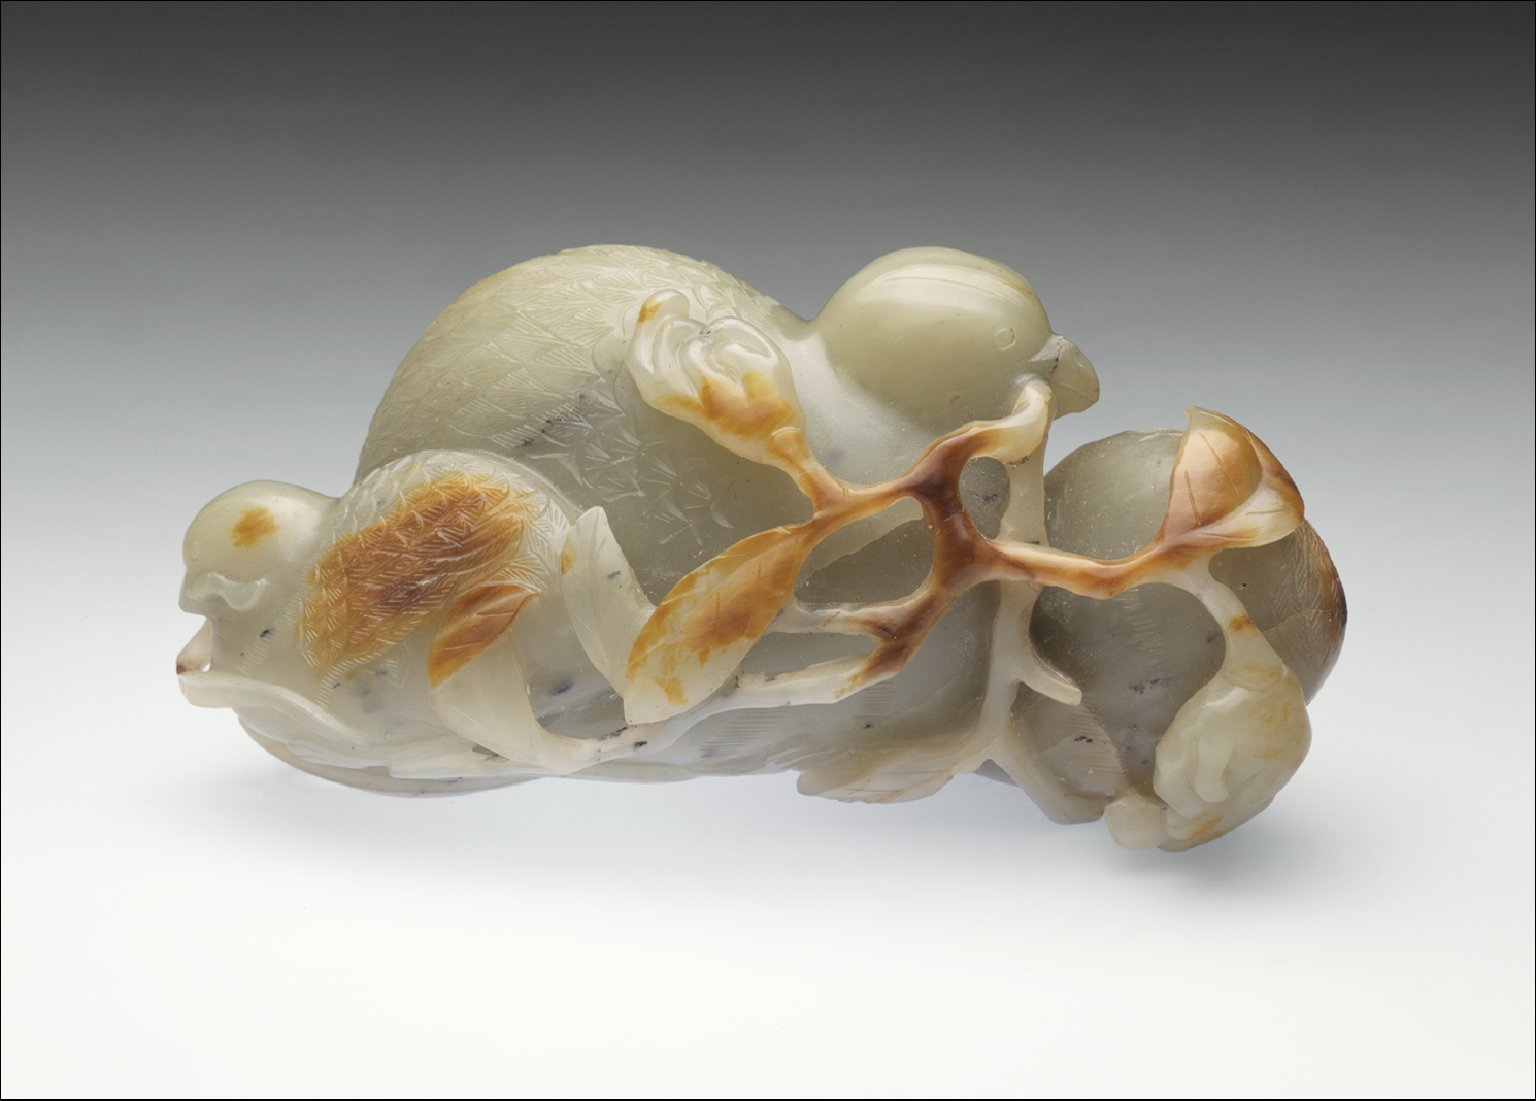 Quails with Branches of 'Buddha's Hand' (Foshou) and Flowers